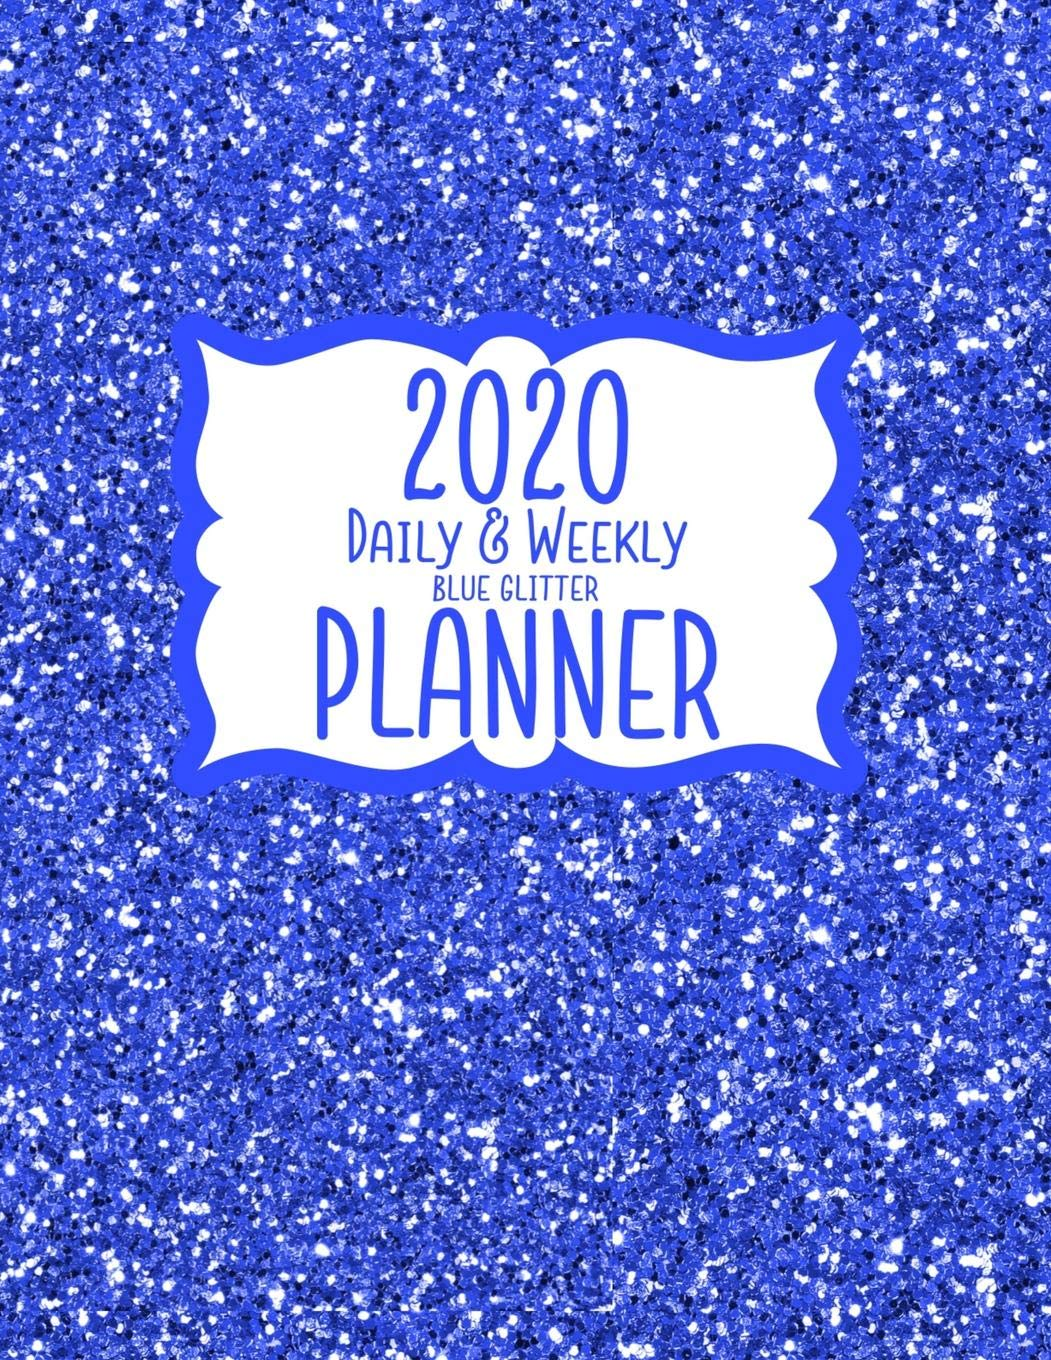 2020 Daily & Weekly Blue Glitter Planner: 8.5 x 11 Faux ...